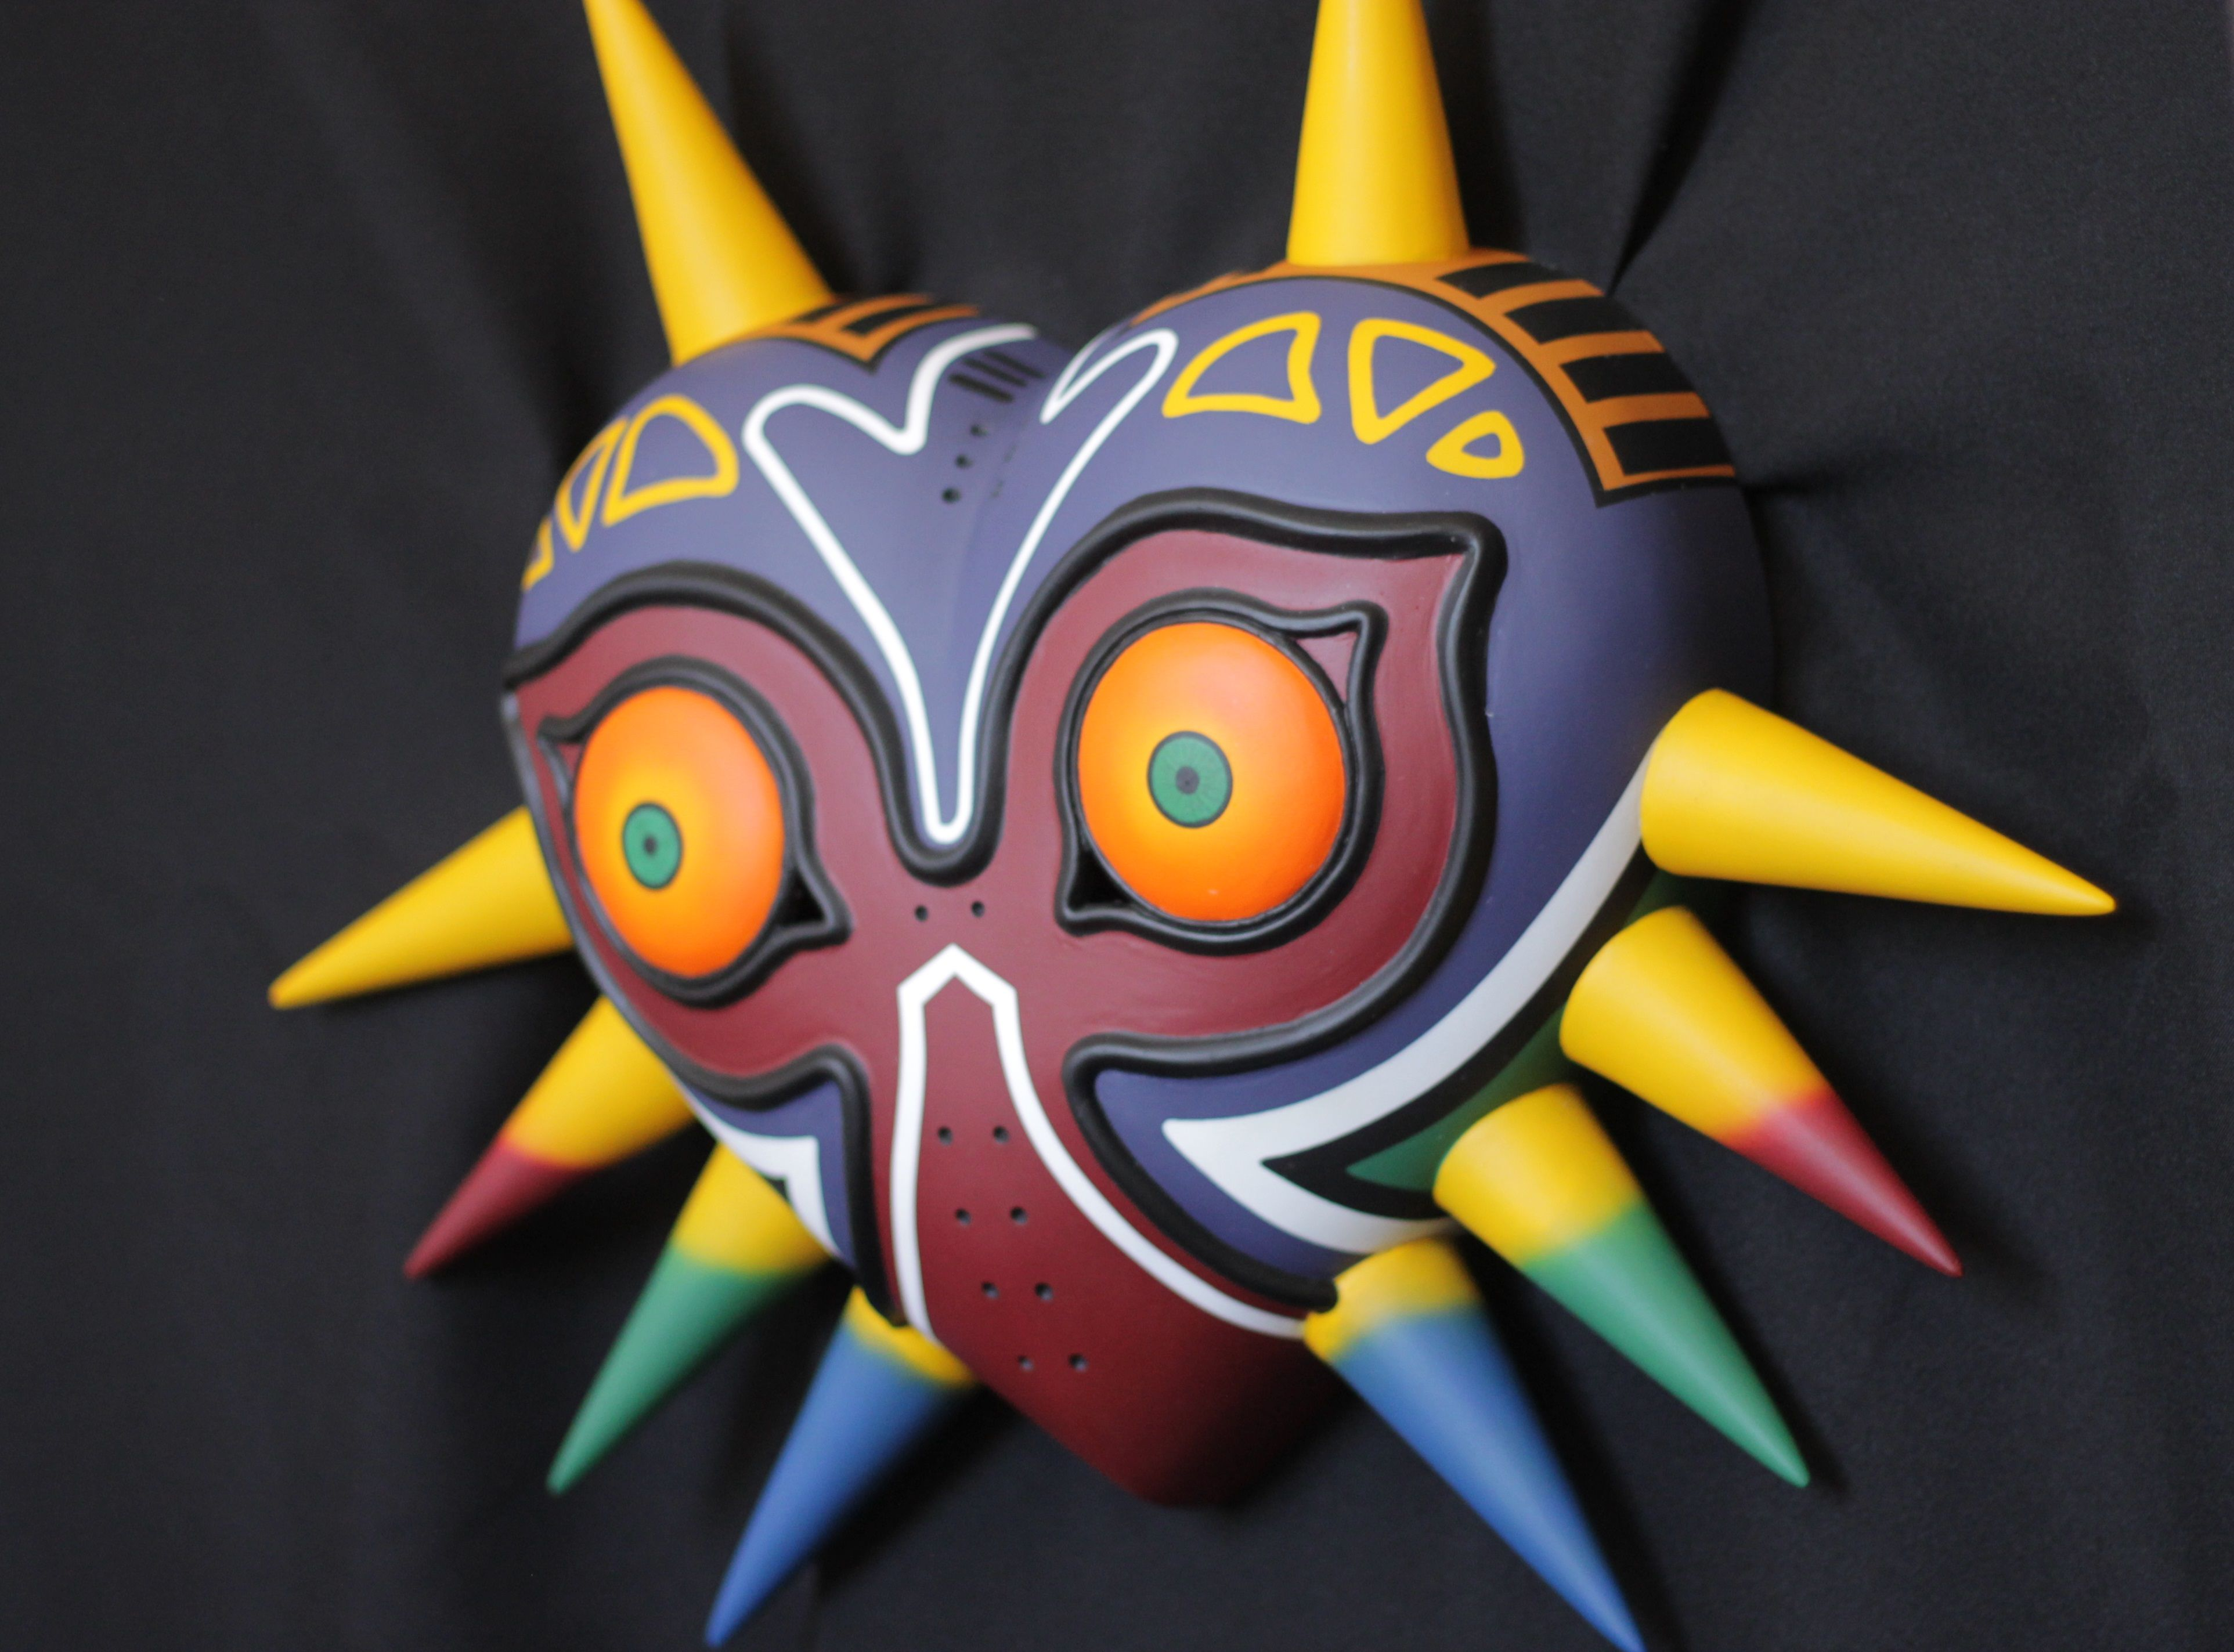 Majora's Mask wearable replica from the game